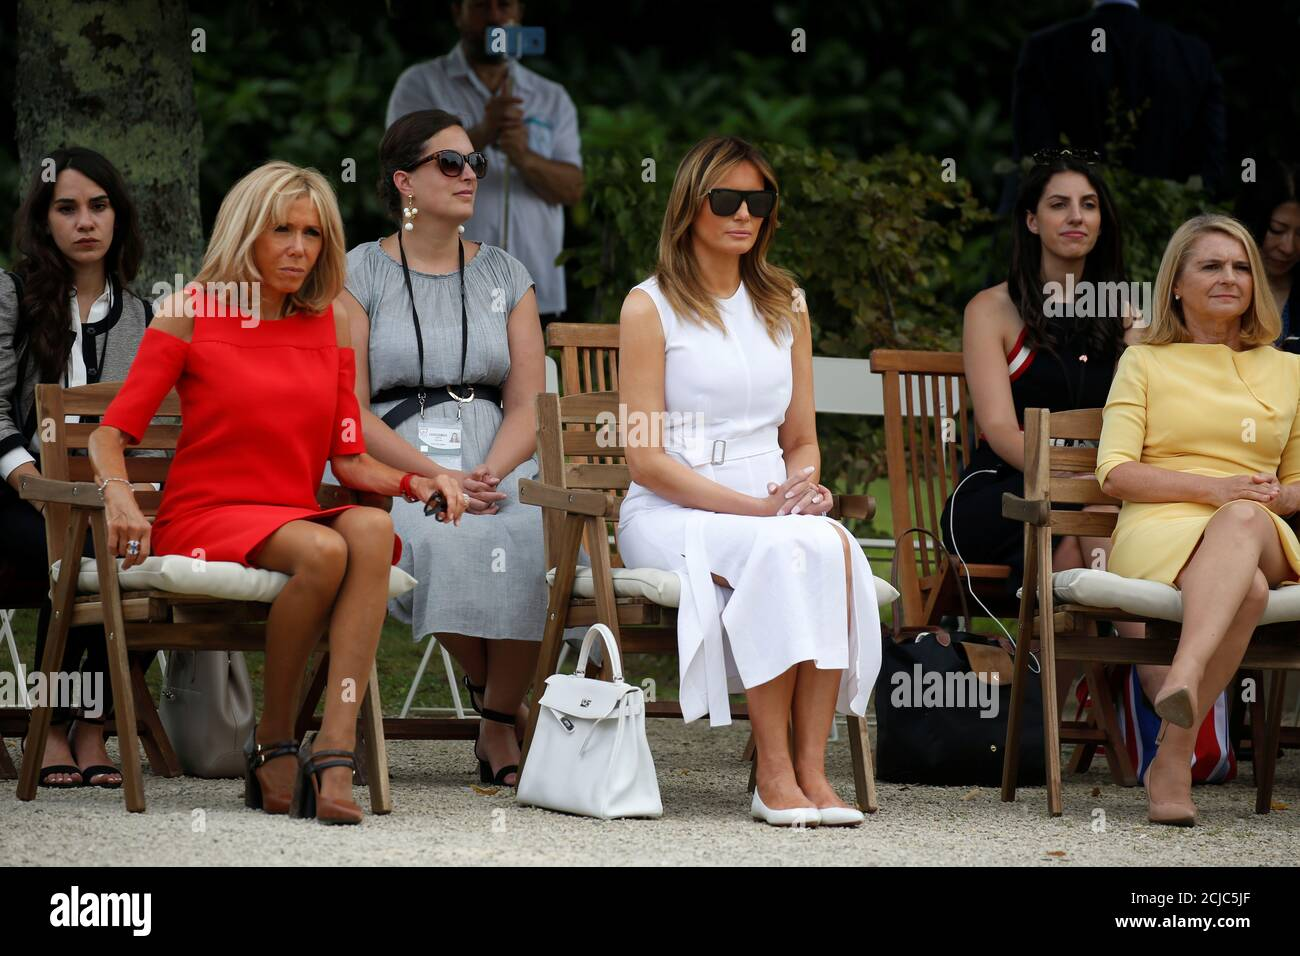 Brigitte Macron Wife Of French President Emmanuel Macron U S First Lady Melania Trump And Malgorzata Tusk